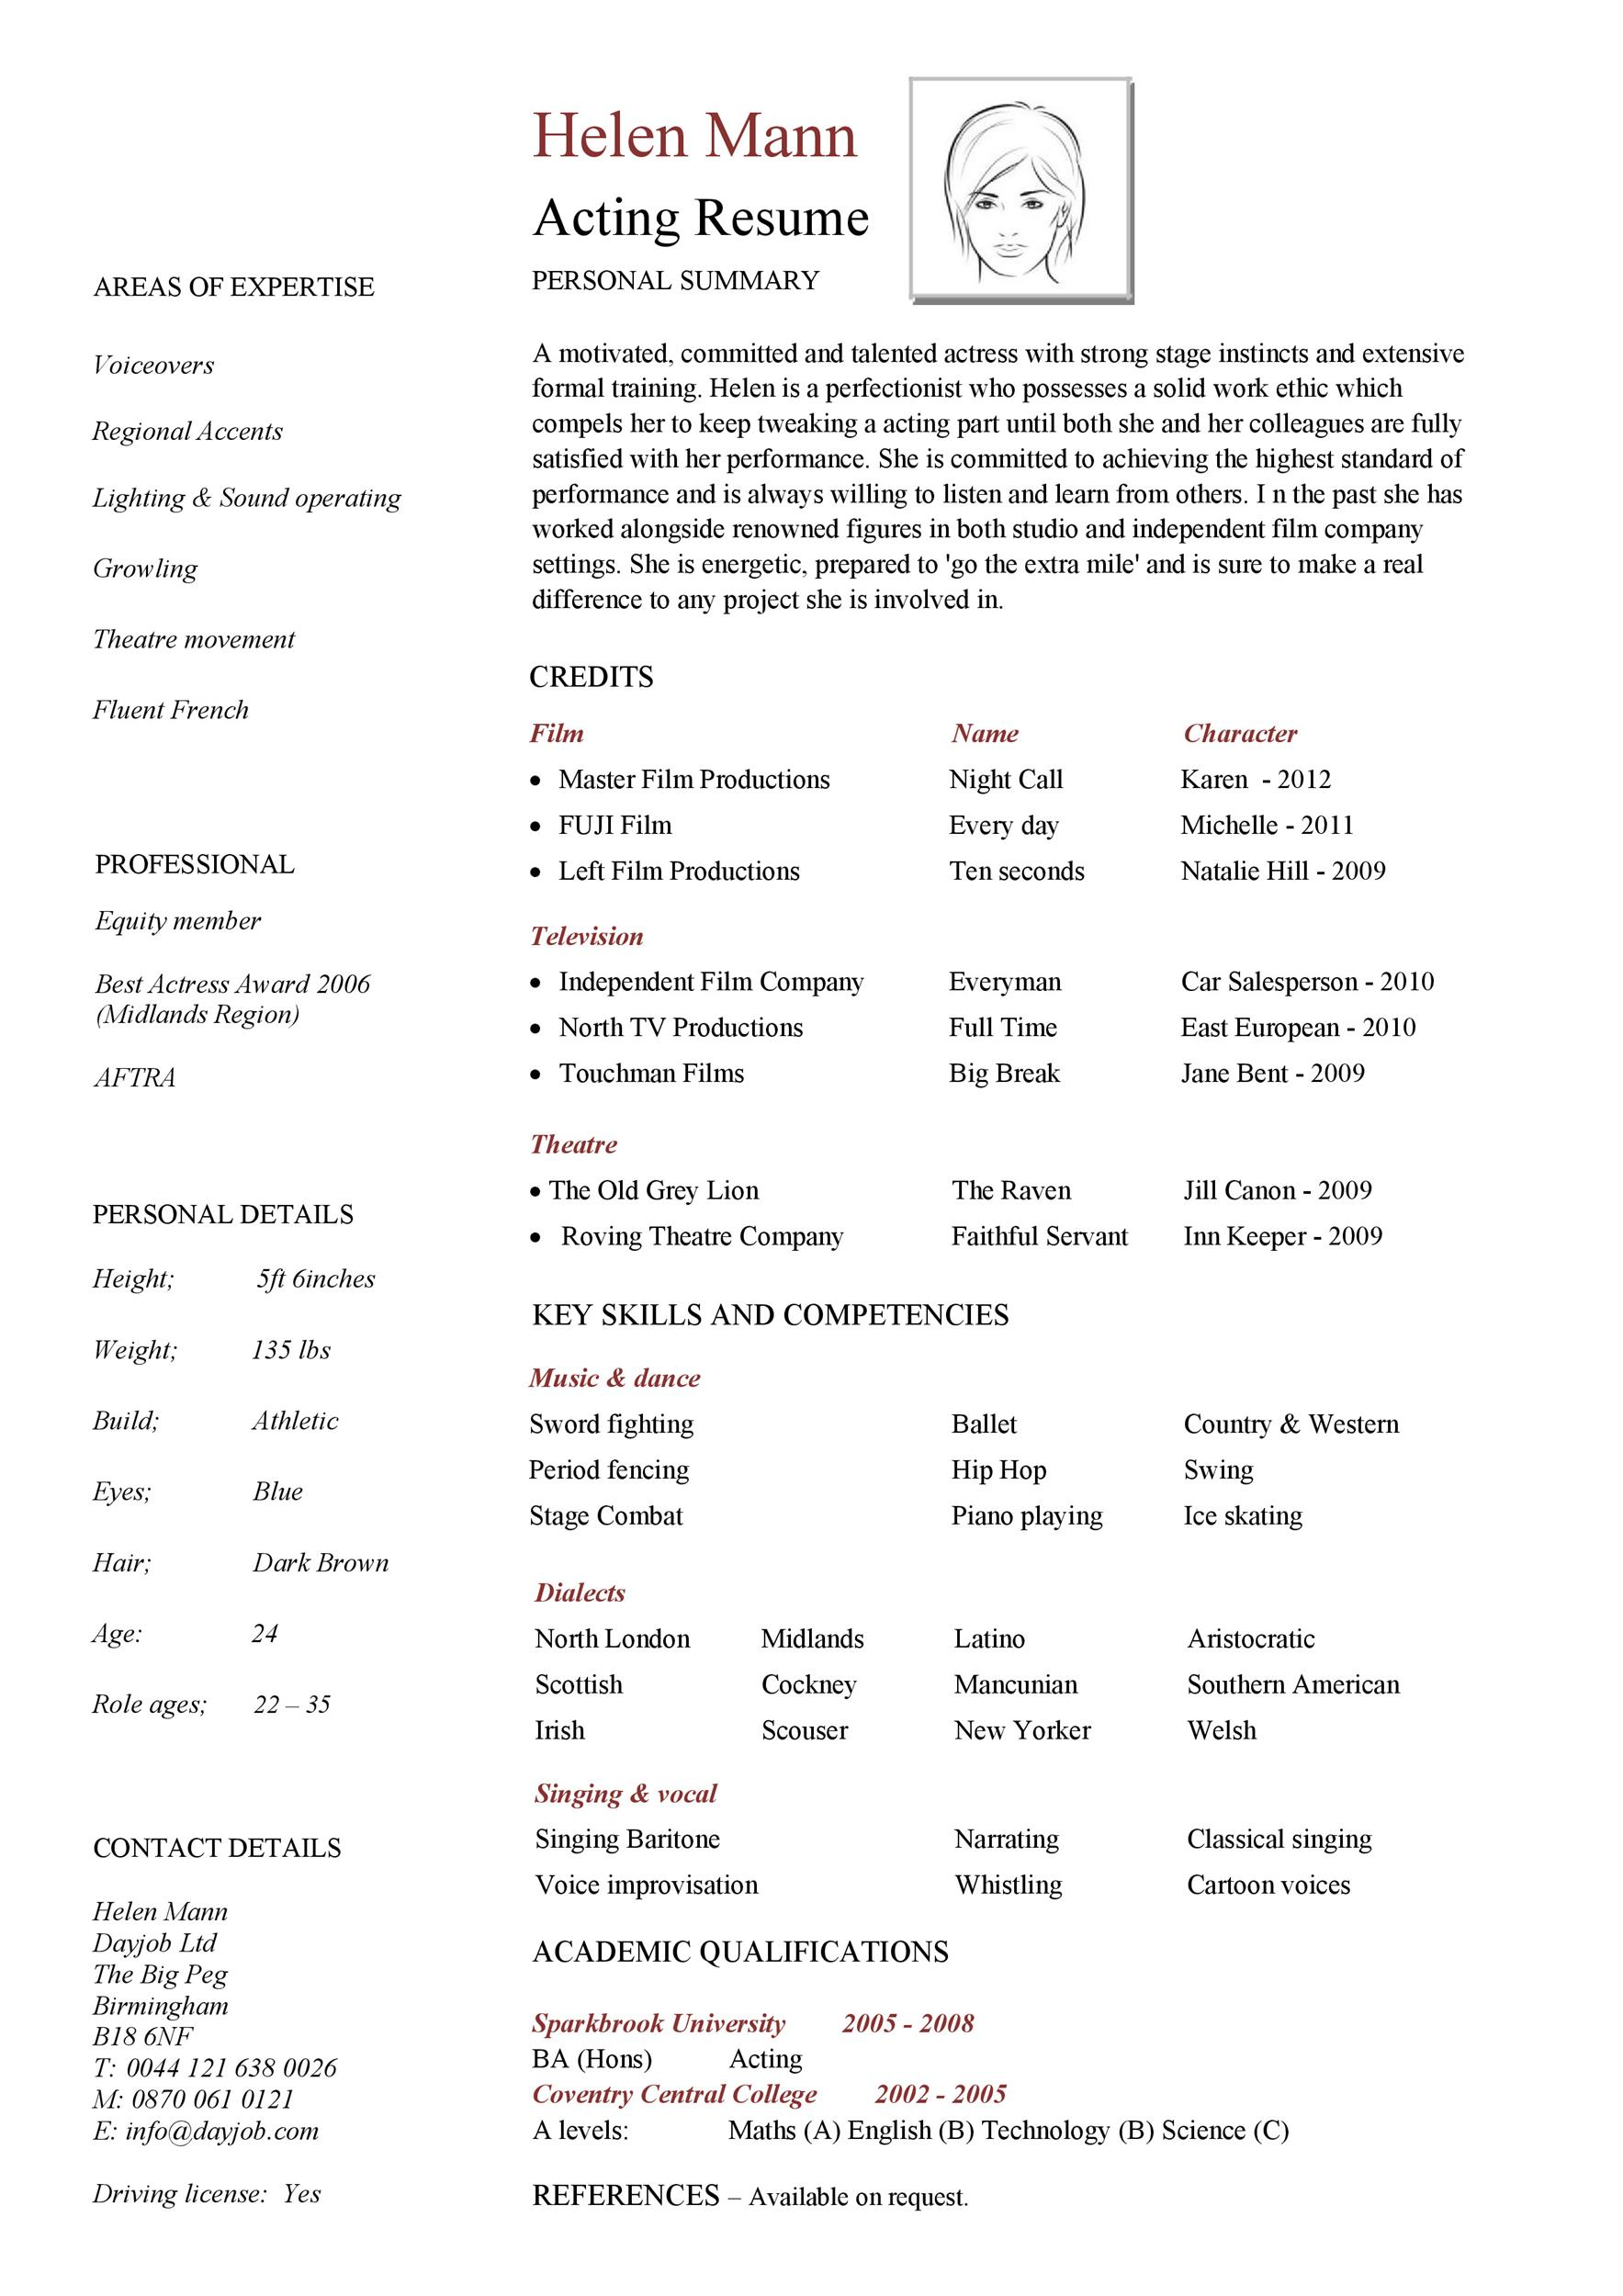 Free acting resume template 02